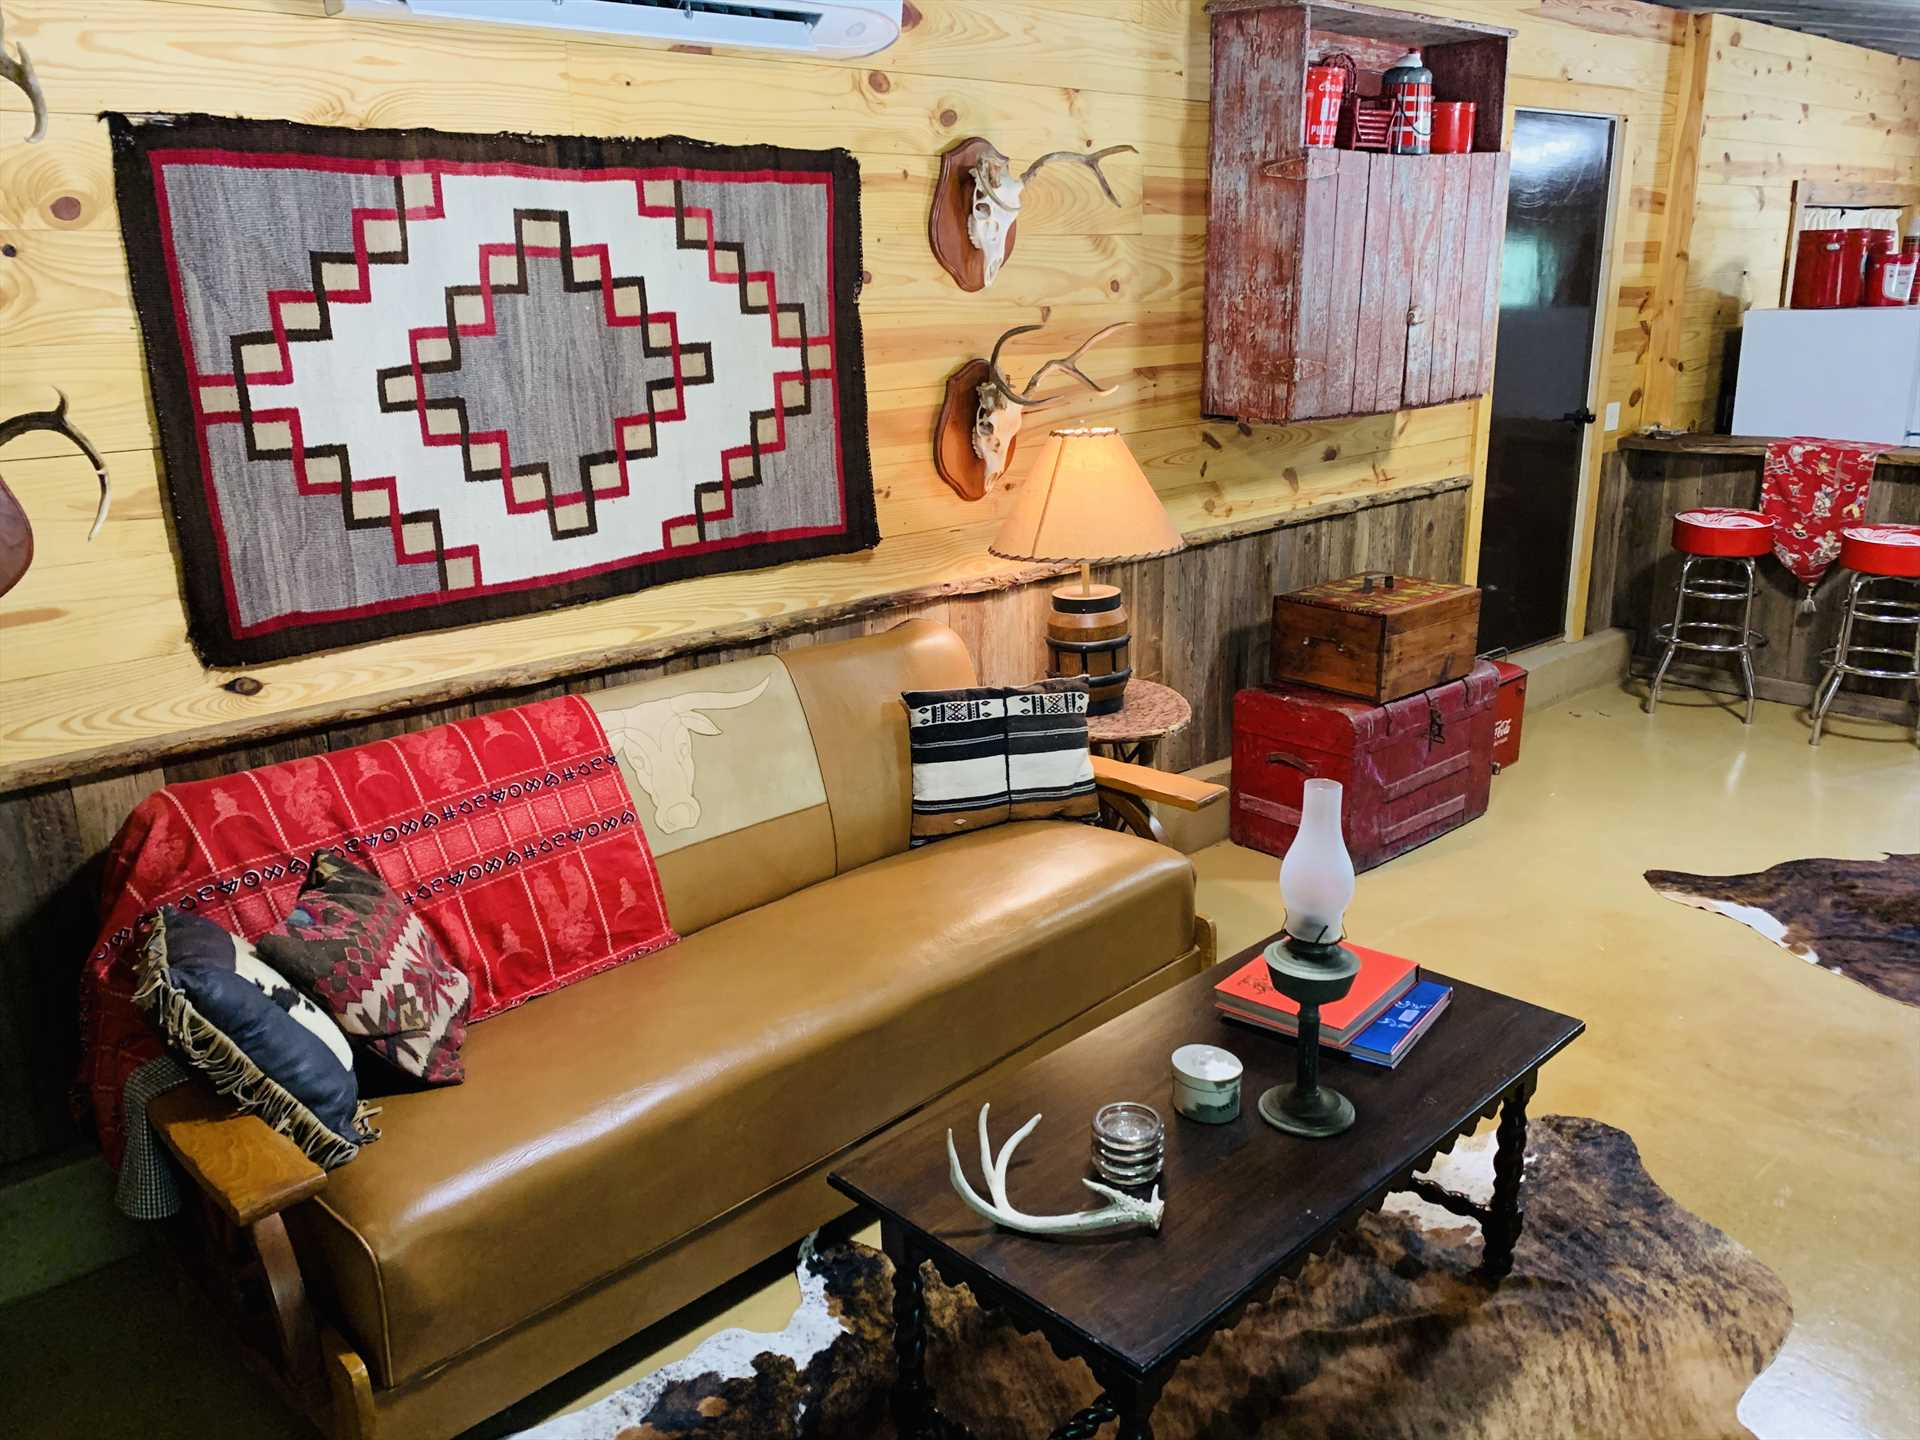 Sweet southwestern decor and plenty of leg-stretching room welcome you to the living area!